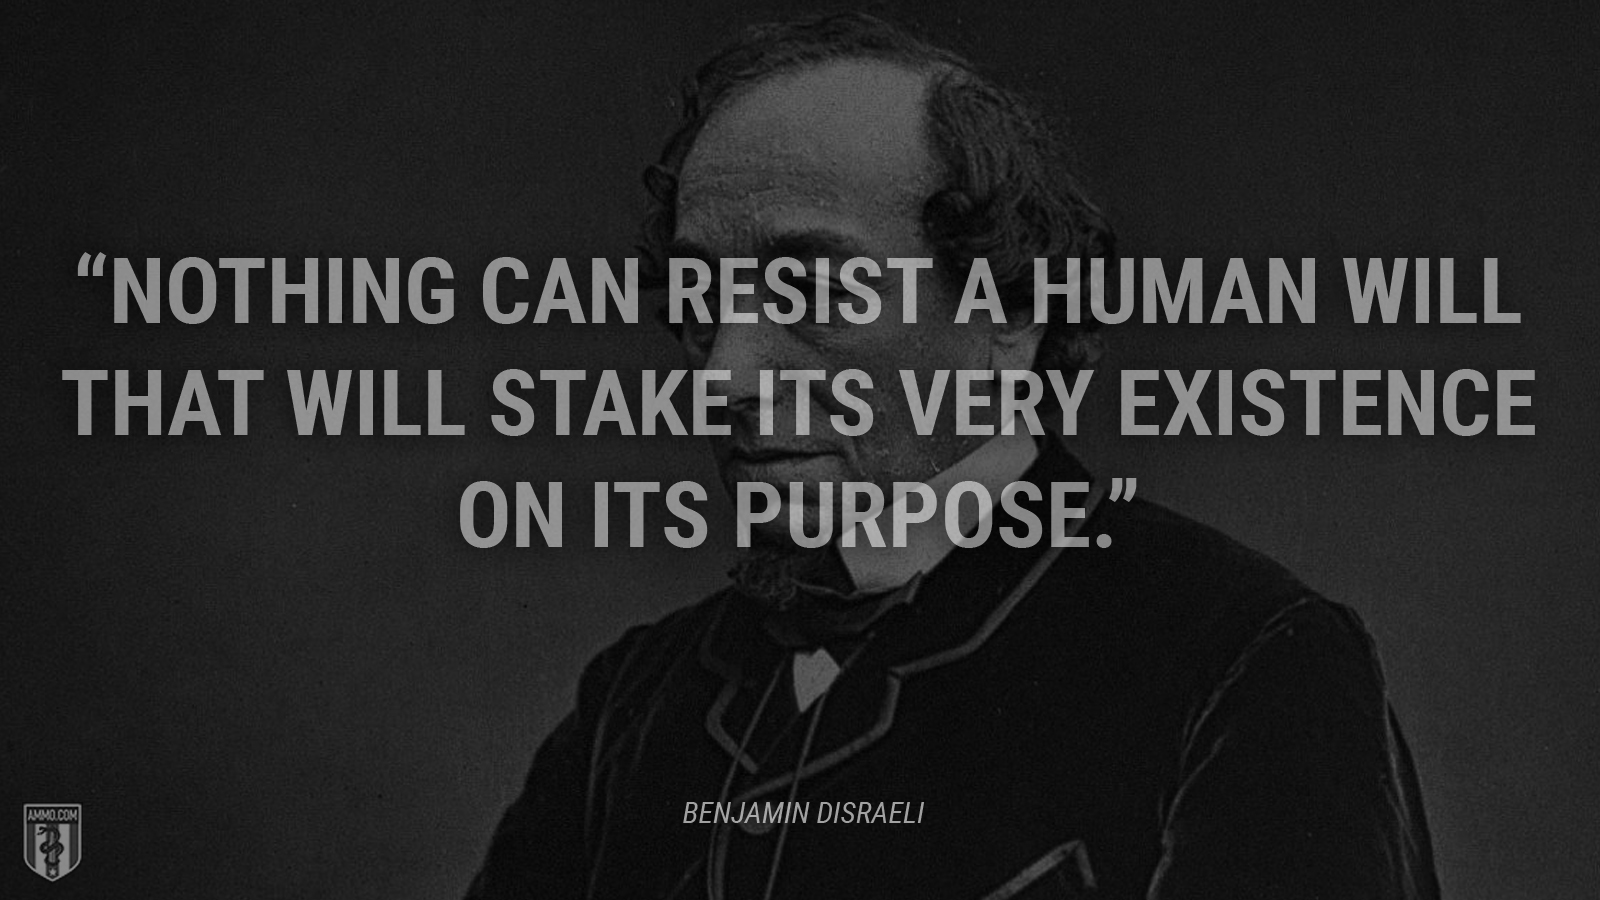 """Nothing can resist a human will that will stake its very existence on its purpose."" - Benjamin Disraeli"